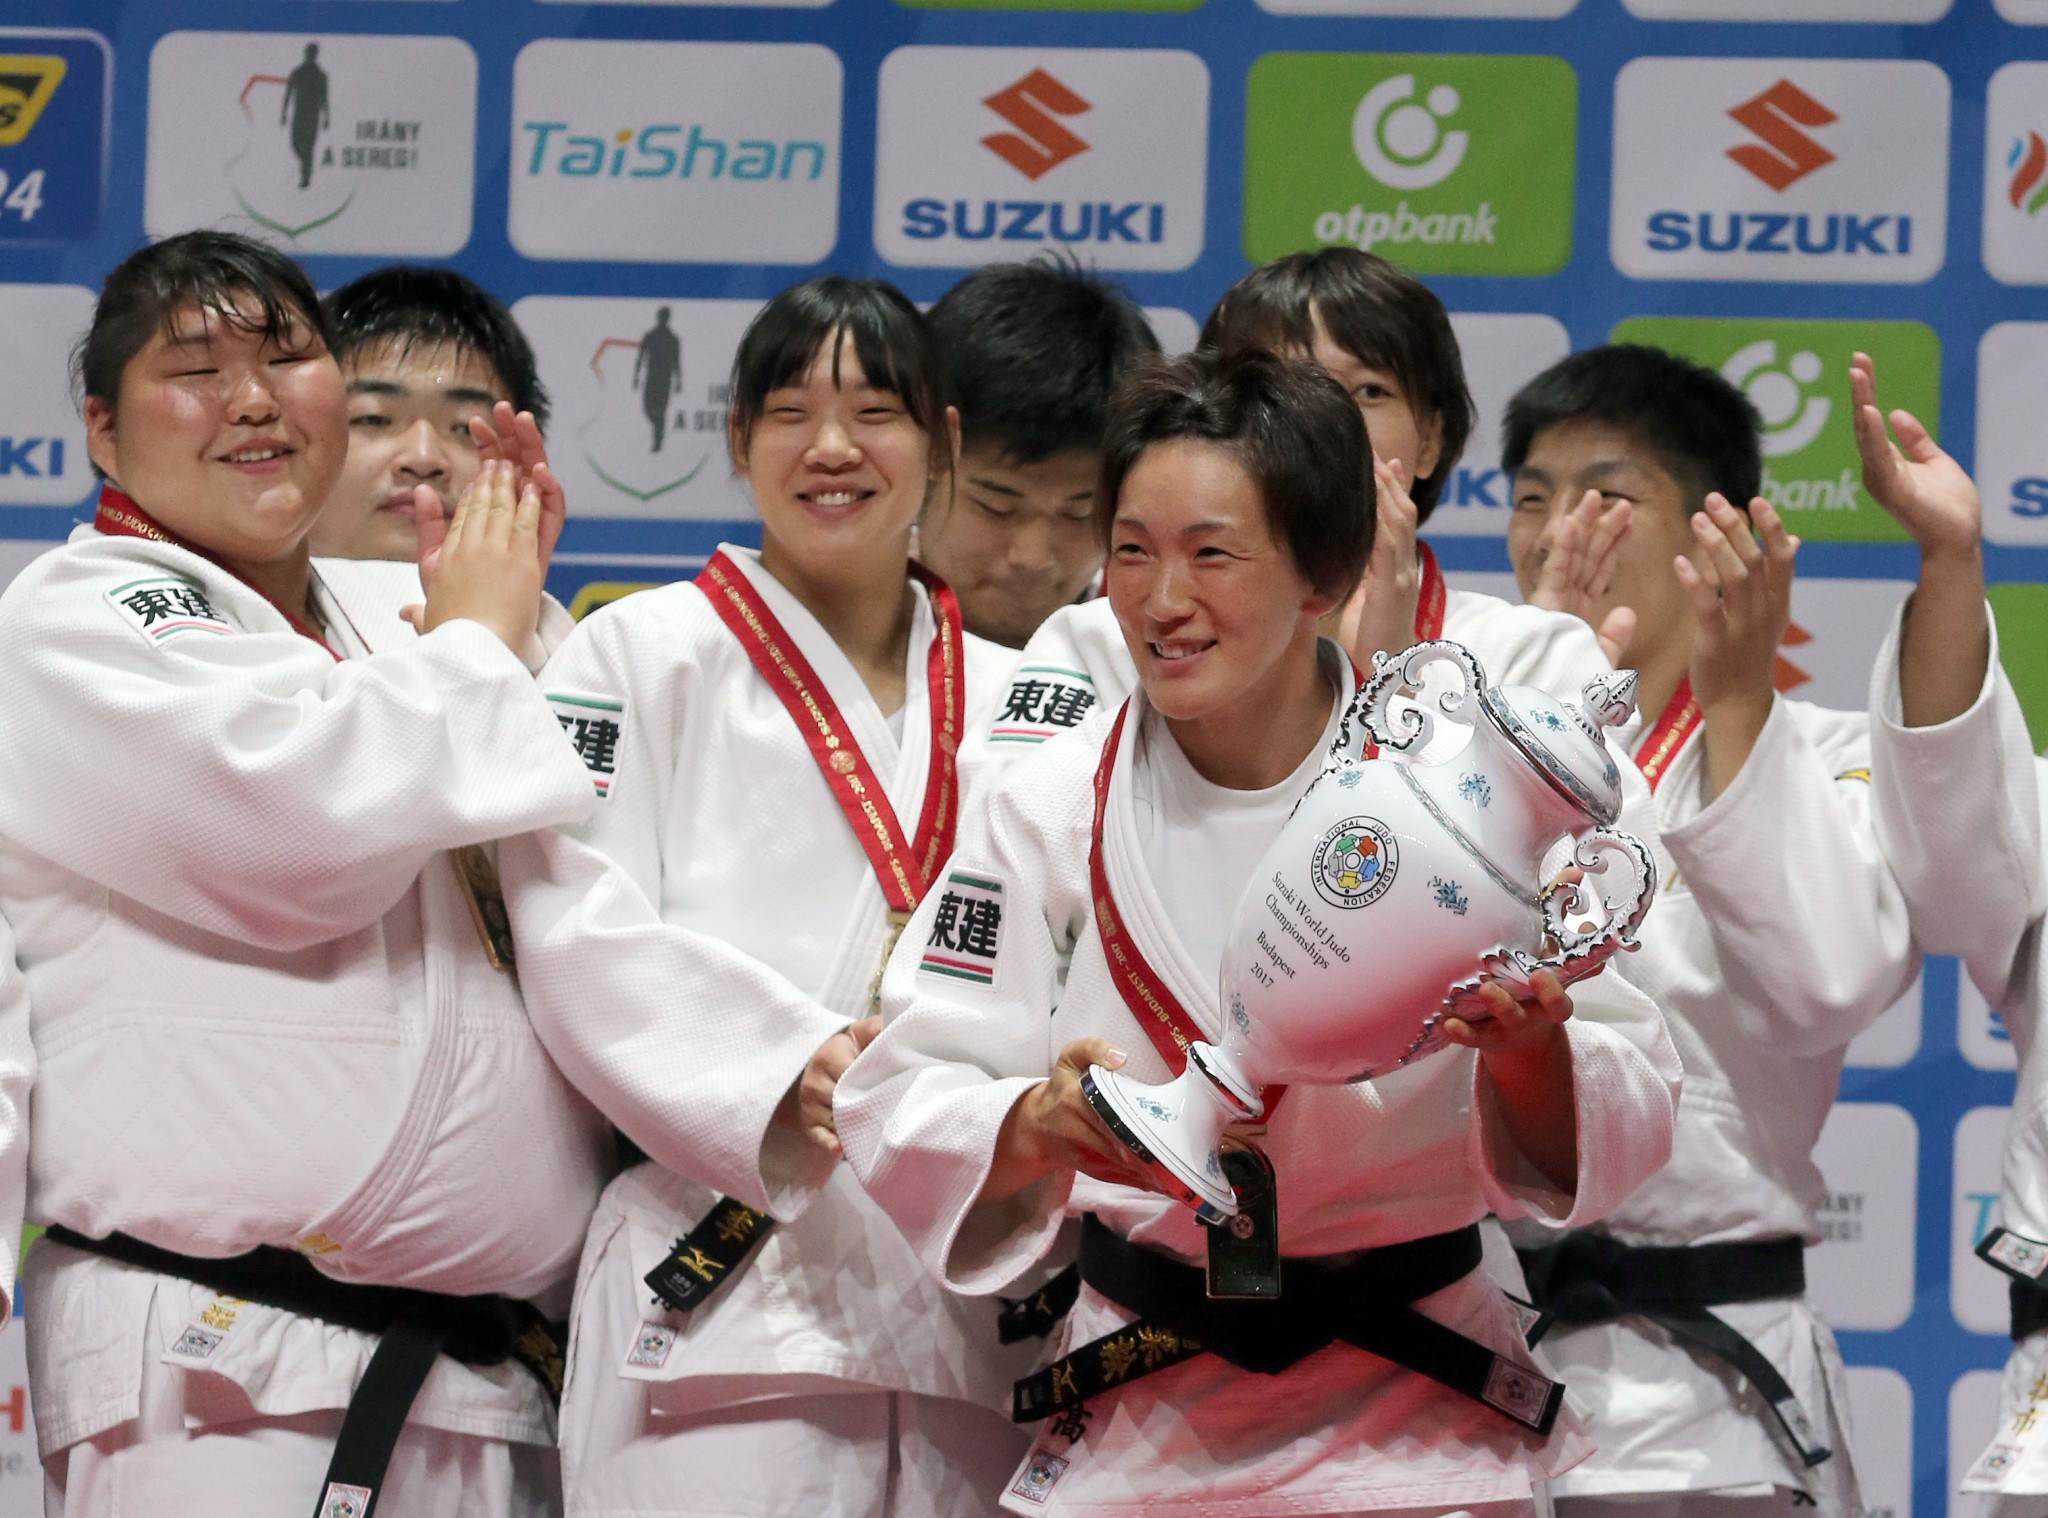 Gold winner Japan's team celebrates on the podium of the team event at the World Judo Championships in Budapest on September 3, 2017 ©Getty Images